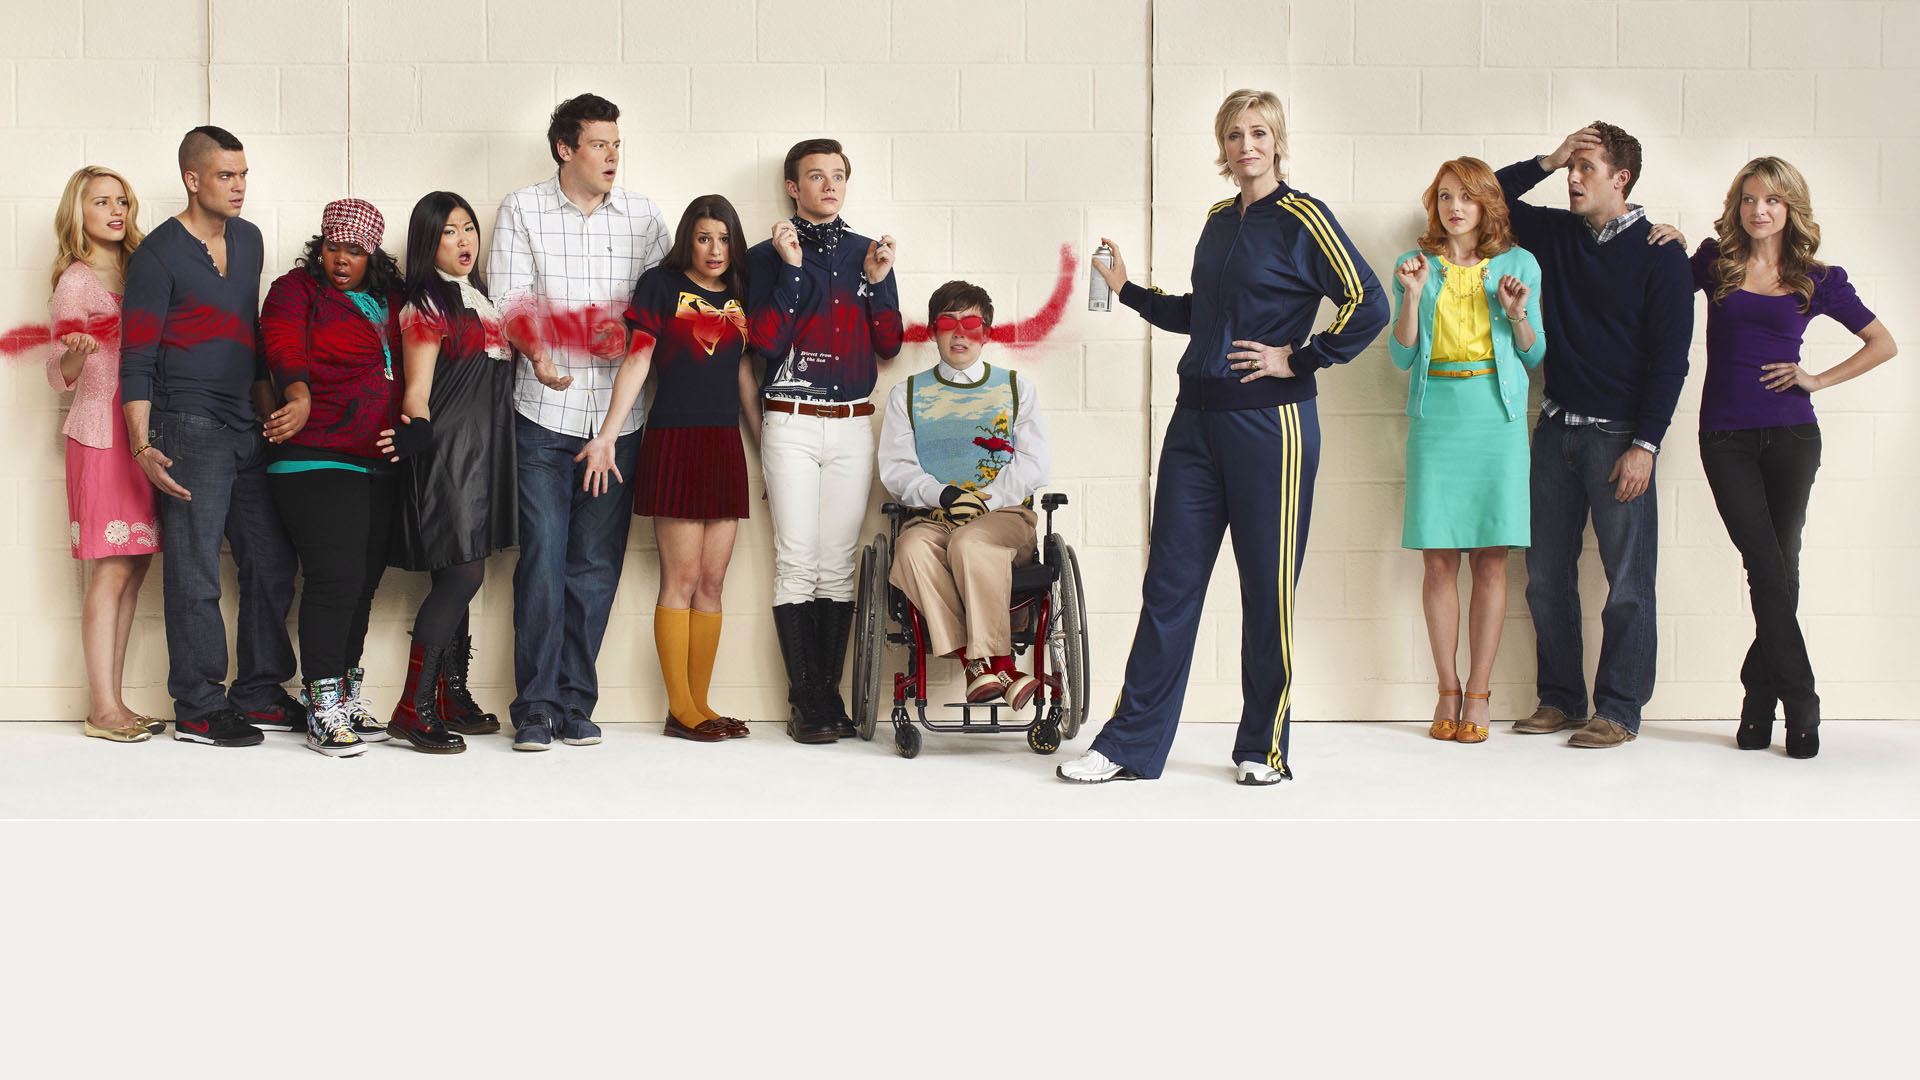 glee Glee the music, vol 1 in essence is a compilation of cover songs that were featured on several key moments of the 1st episodes of glee season one.